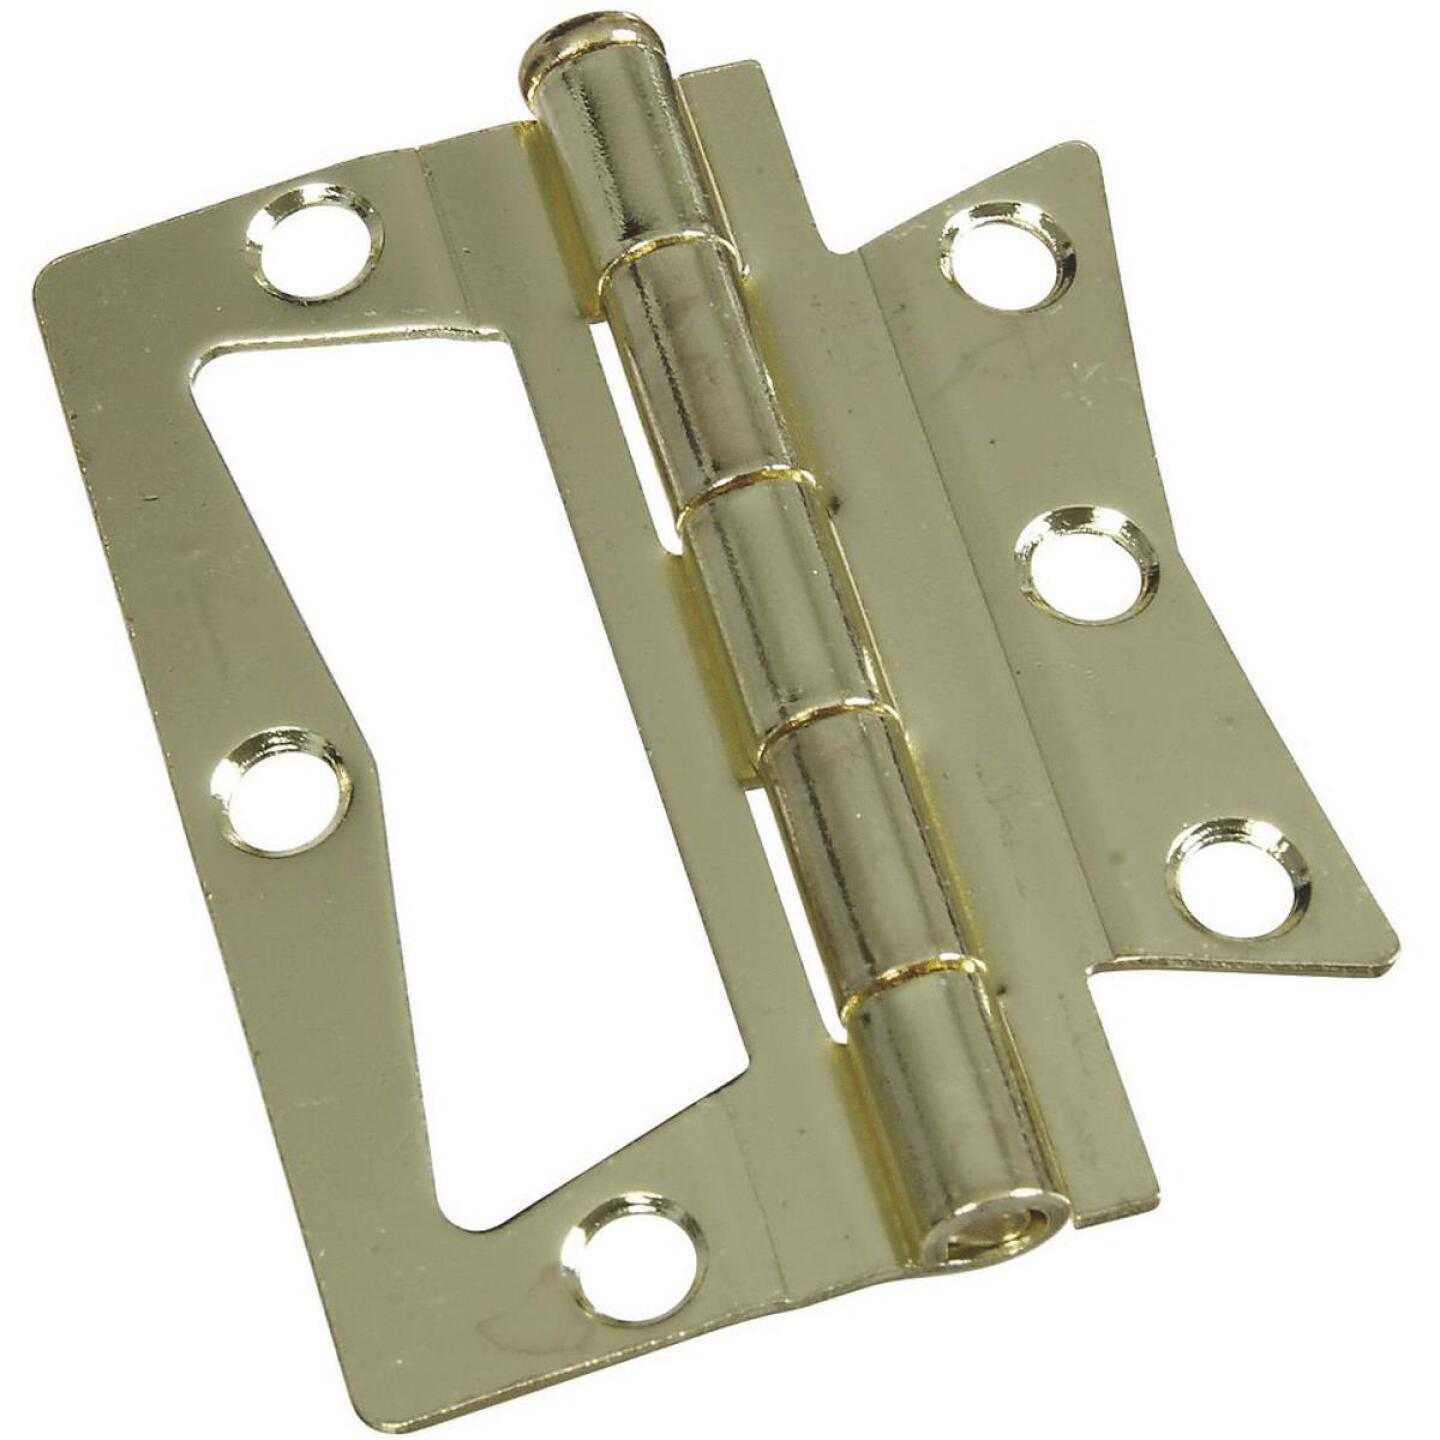 National 3 In. x 3 In. Non-Mortise Hinge (2 Count) Image 1